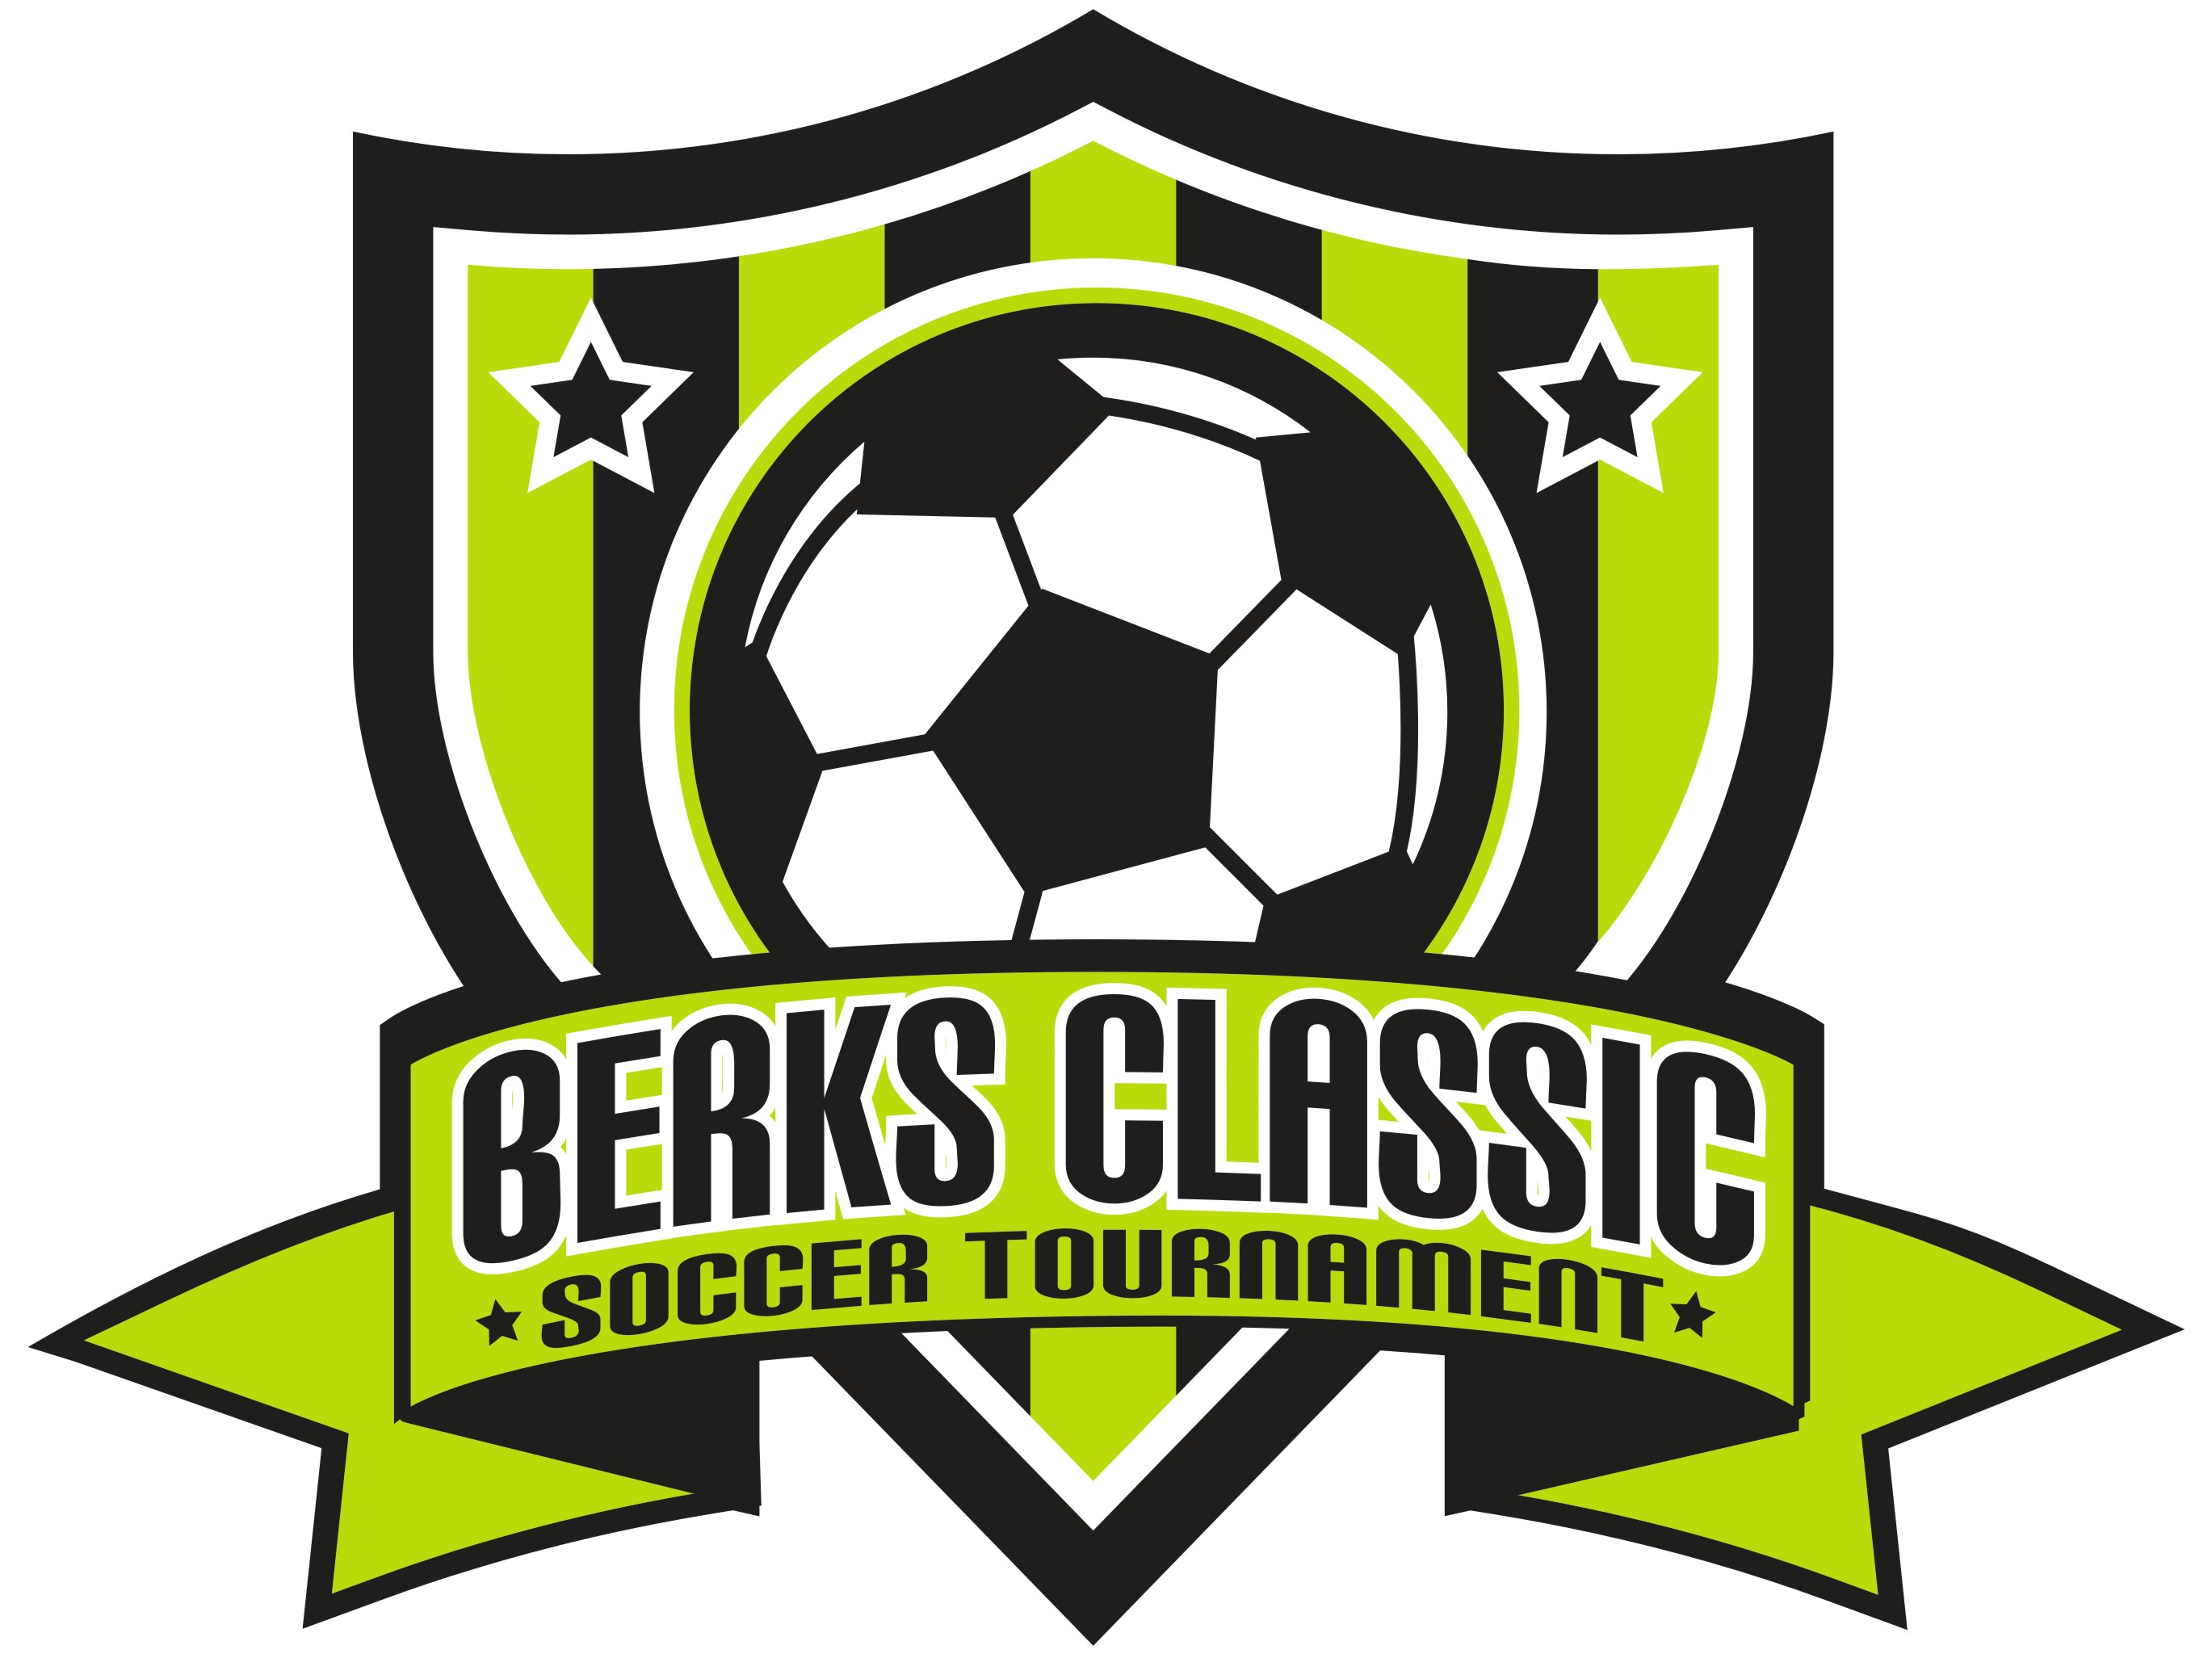 Tournament #2 - 2019 Berks Classic - May 19th